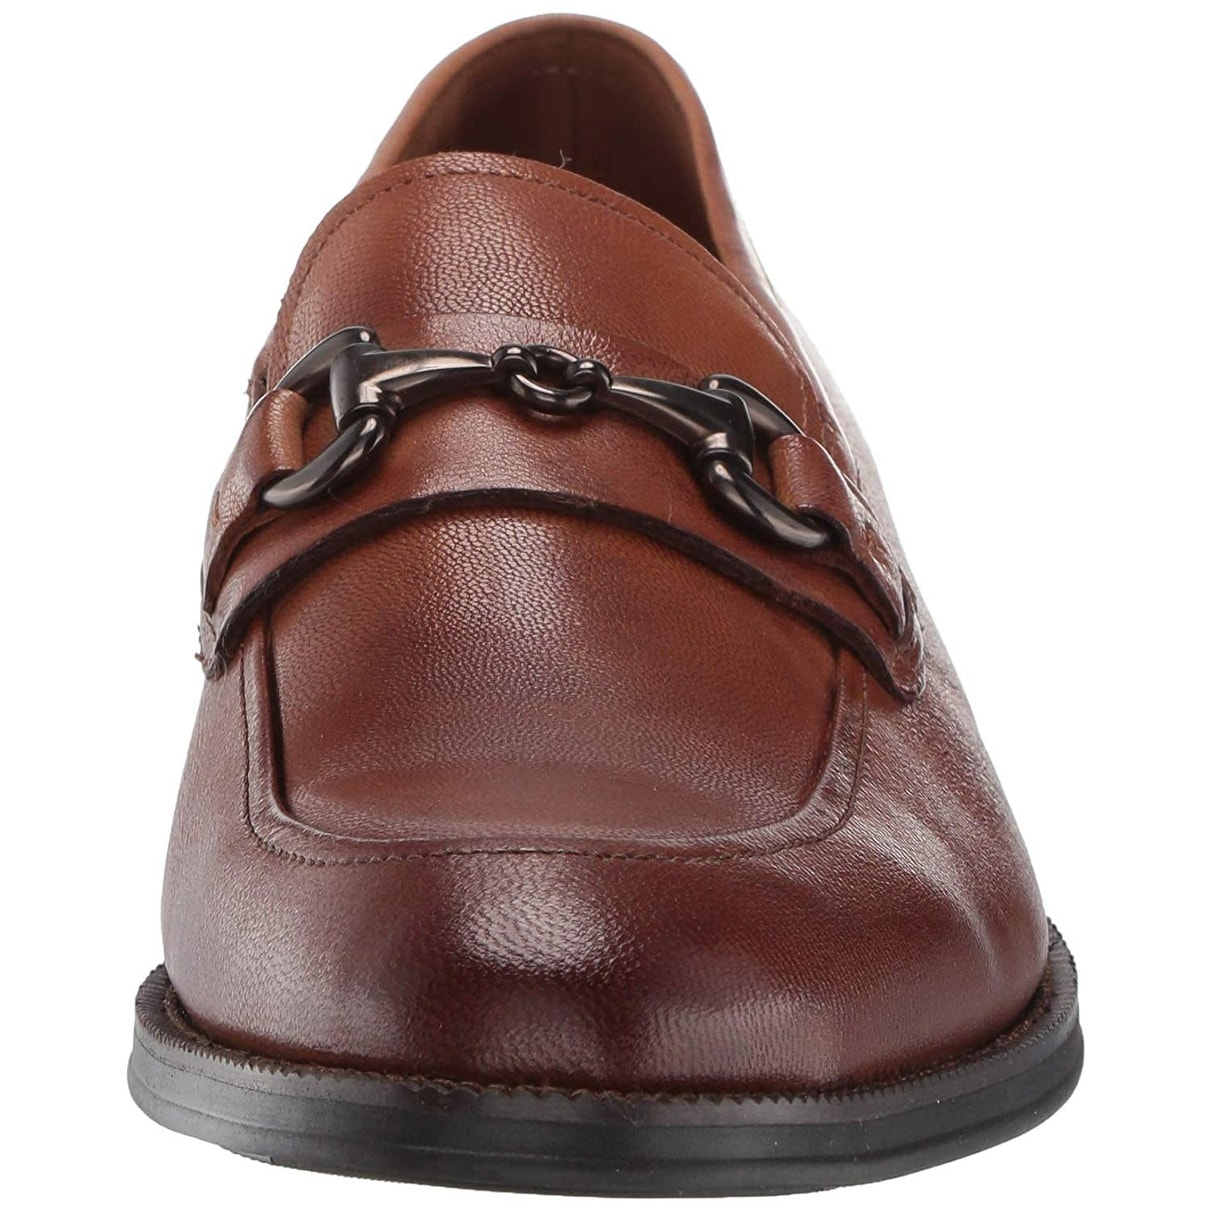 9bb6217e2bc5a Kenneth Cole New York Mens Brock Leather Closed Toe Penny Loafer